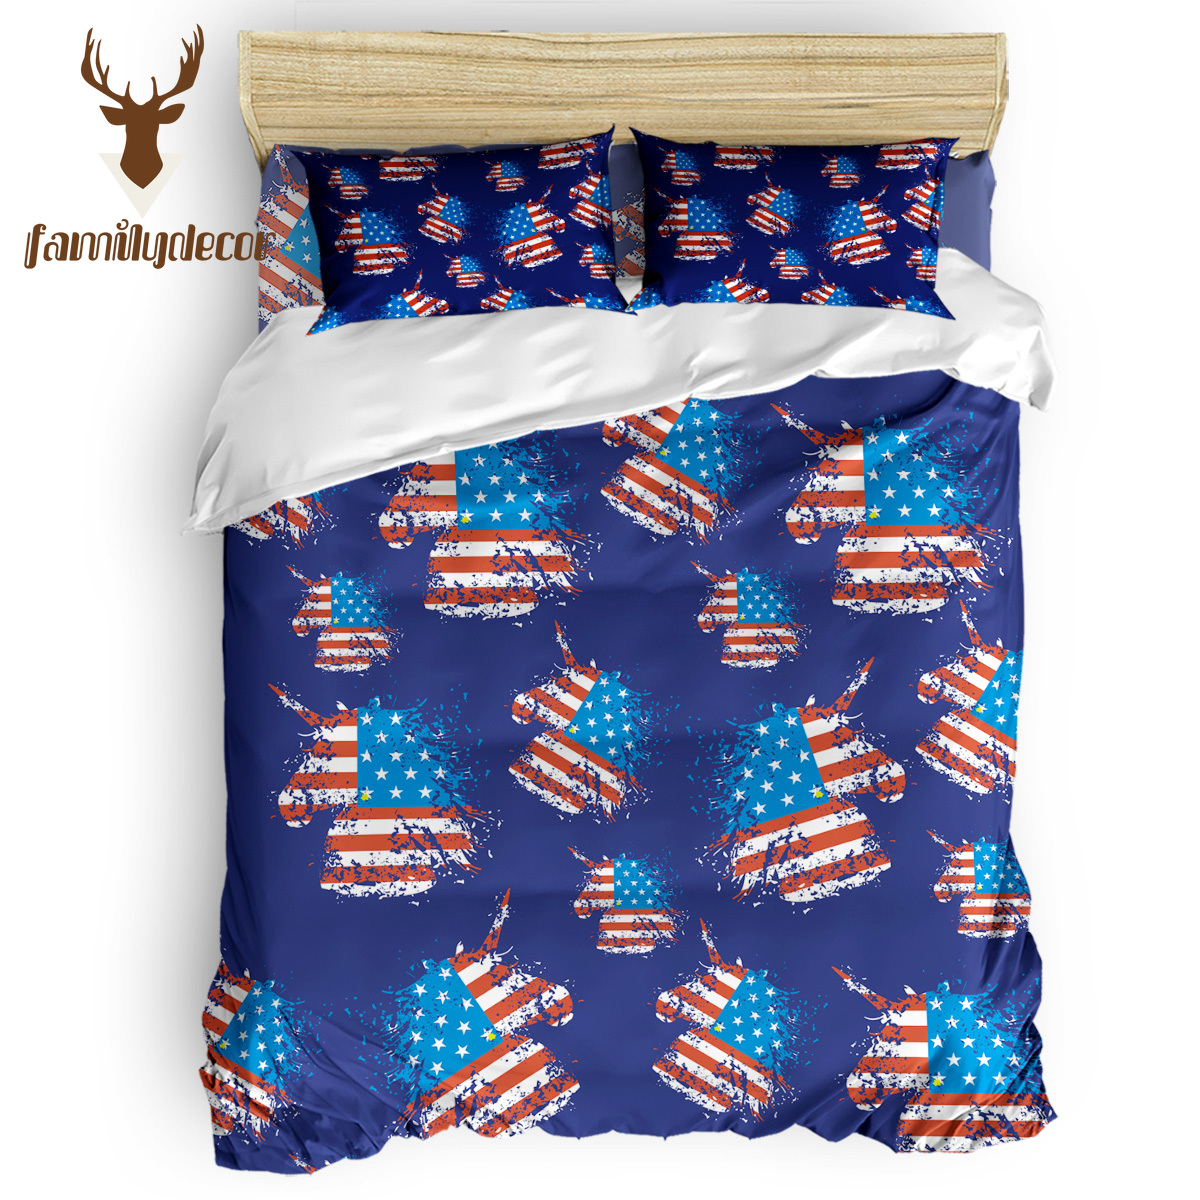 Familydecor Navy Usa Flag Unicorn Silhouette 4 Pcs Comforter Cover Set Quilt Cover Bedding Polyester Fabric Fore California King